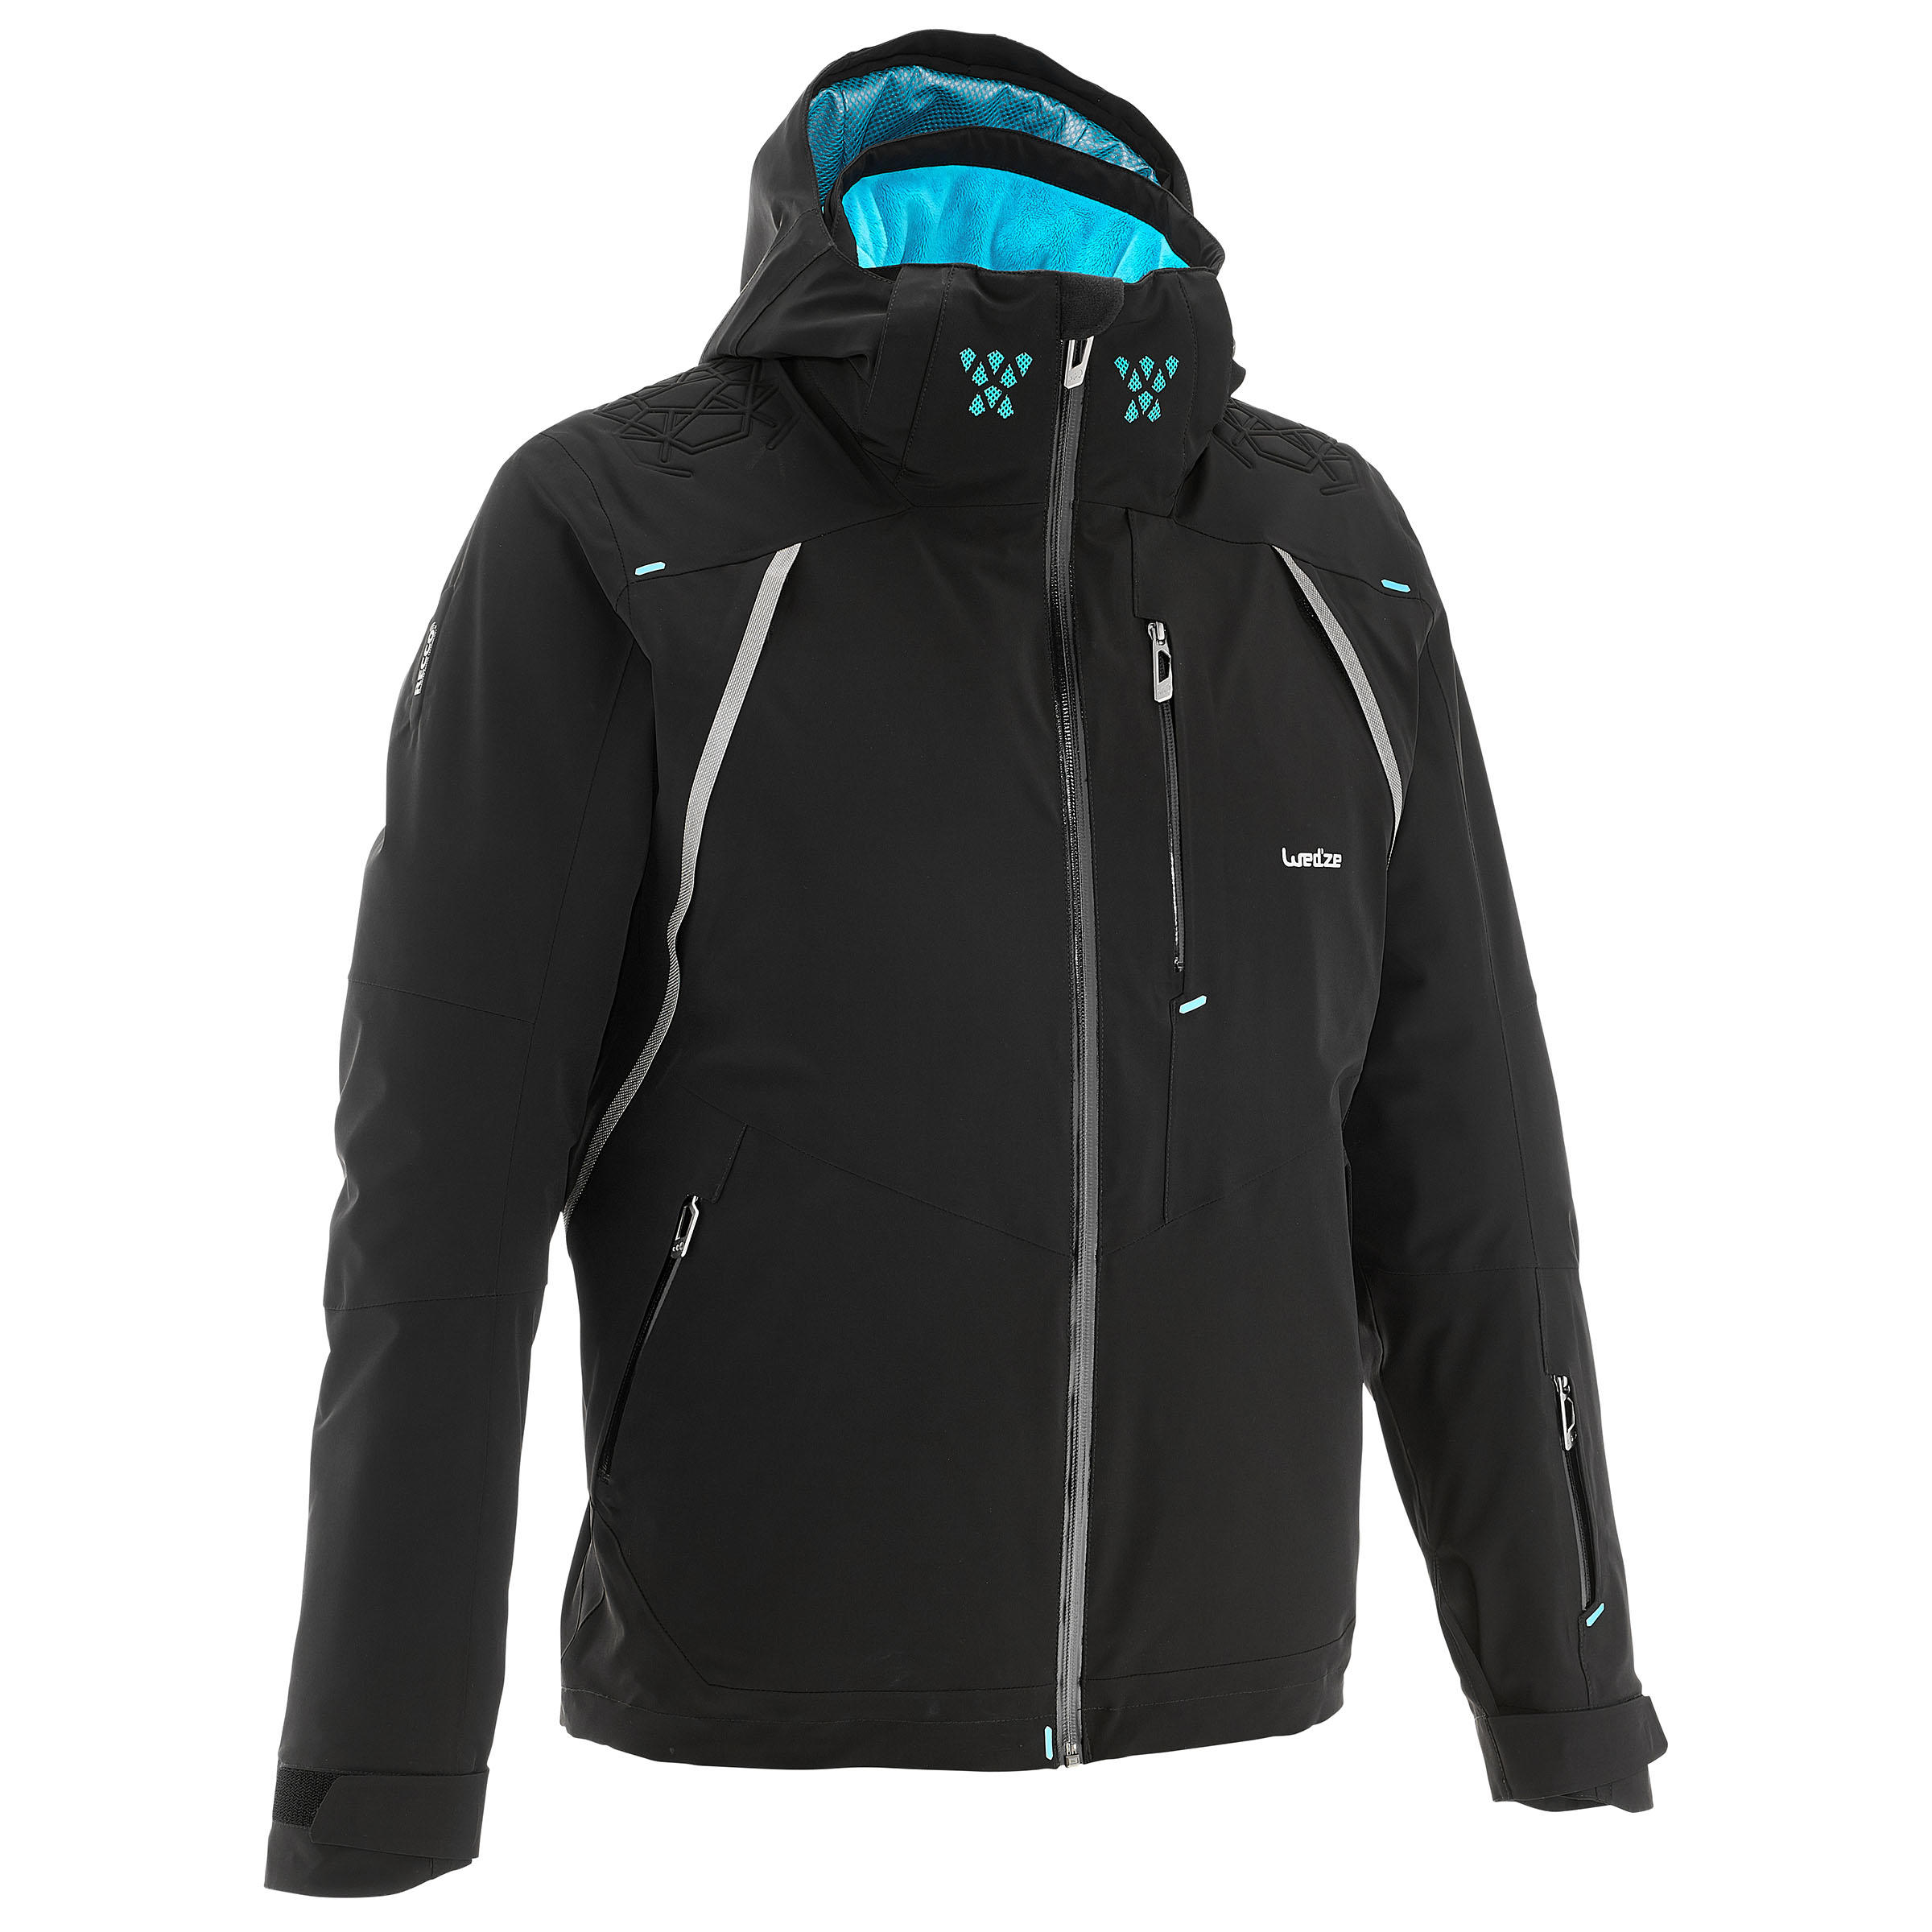 SKI-P JKT 900 MEN'S DOWNHILL SKI JACKET - BLACK